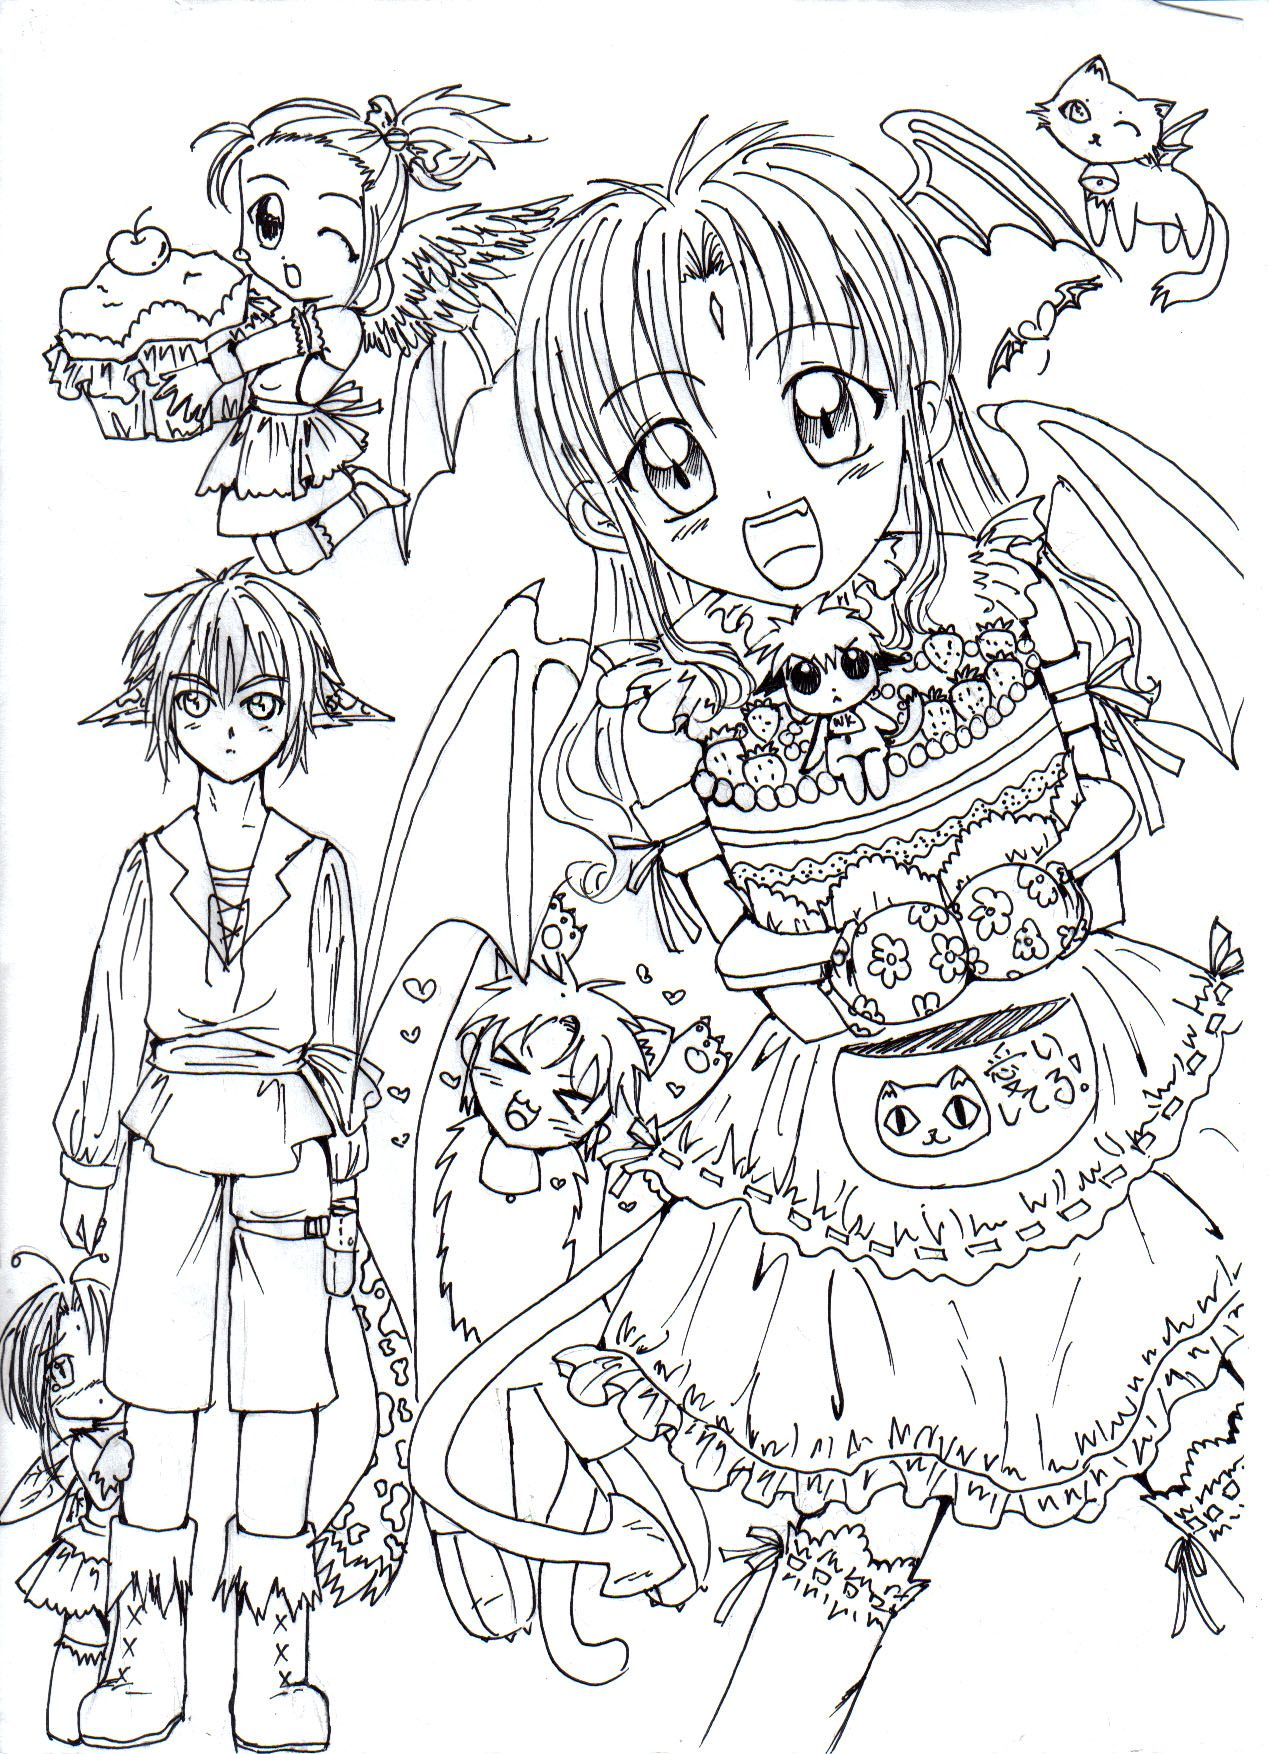 Magic magic choco cake lineart by bunnifyviantart on